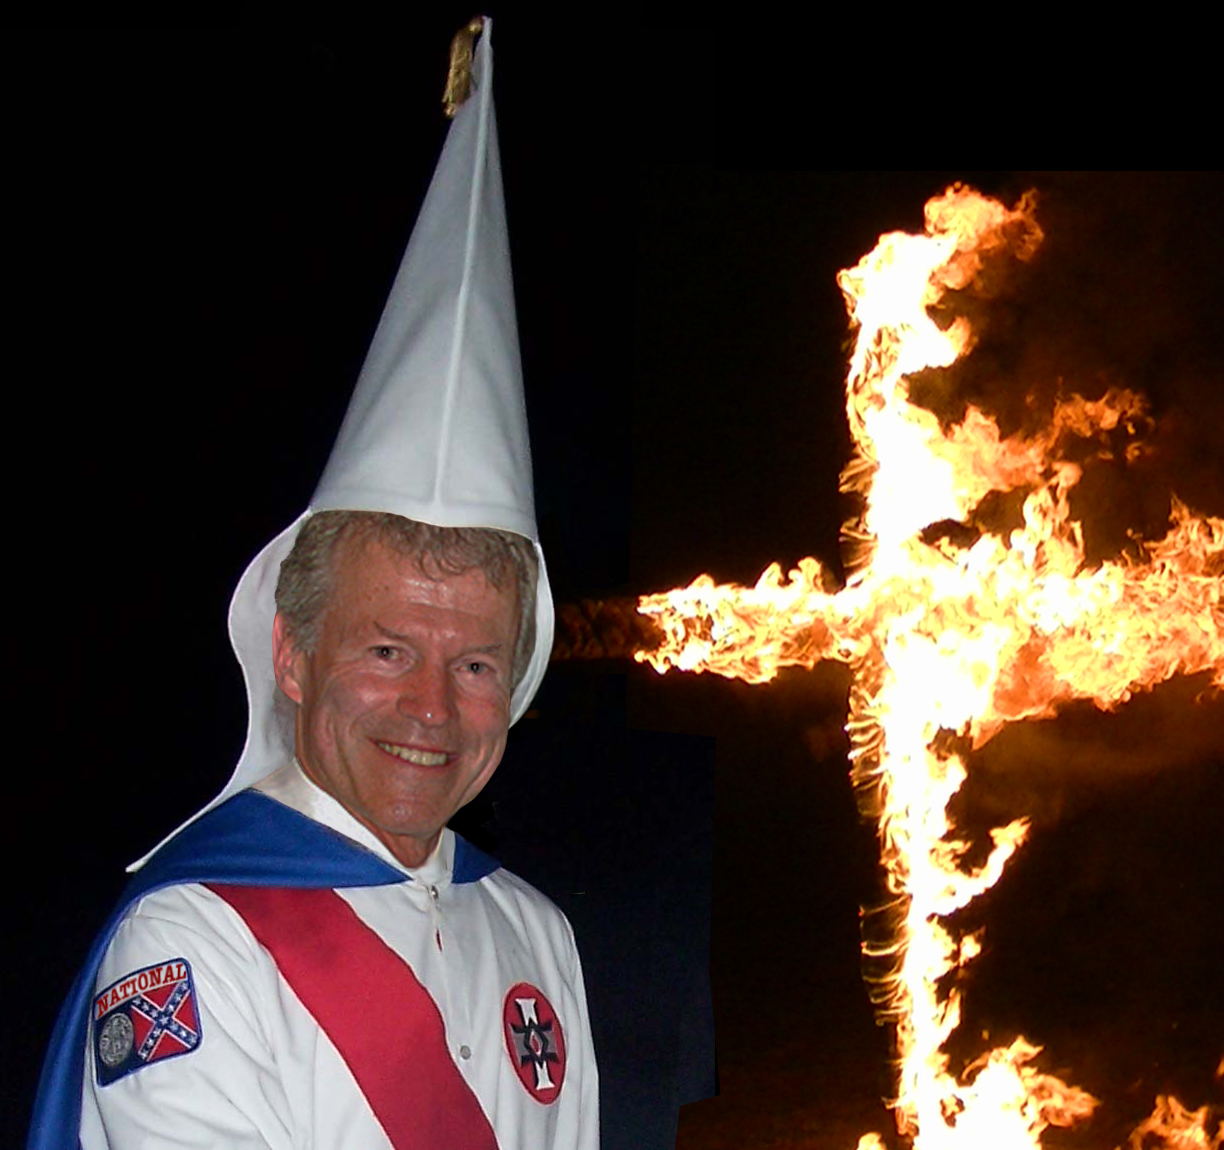 the organization of the knights of the ku klux klan provides and its